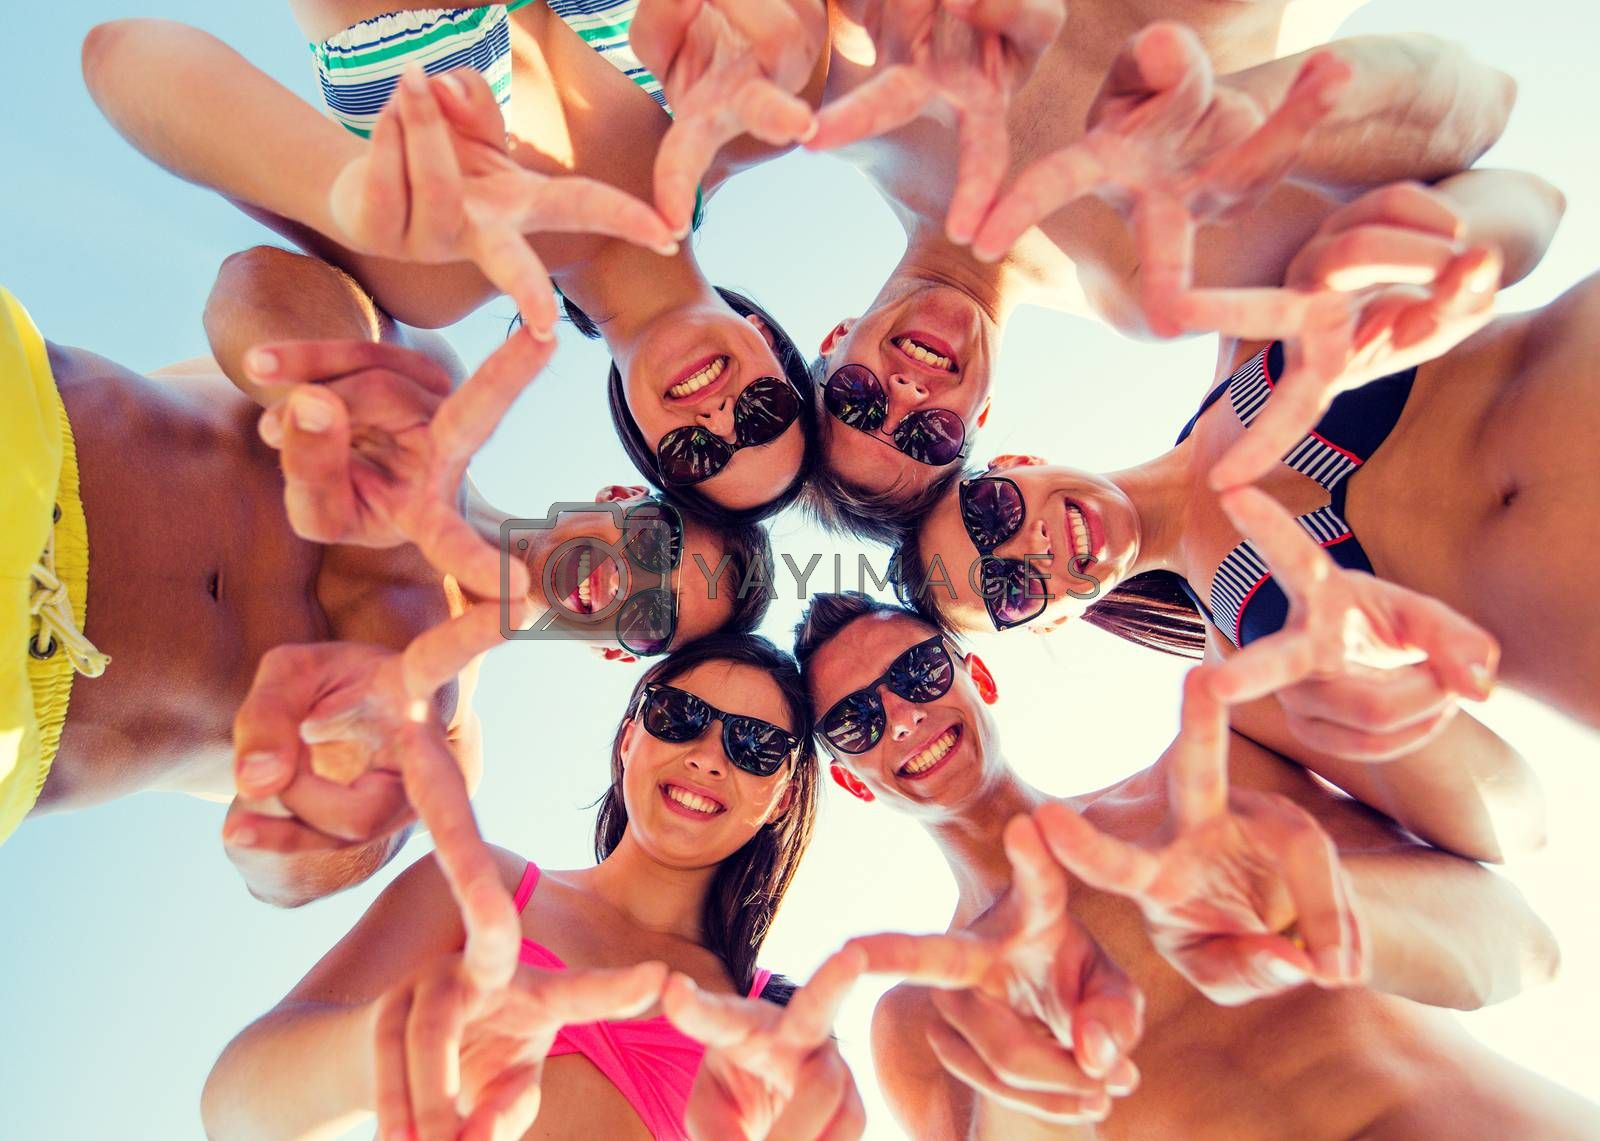 friendship, happiness, summer vacation, holidays and people concept - group of smiling friends wearing swimwear and showing victory or peace sign standing in circle over blue sky